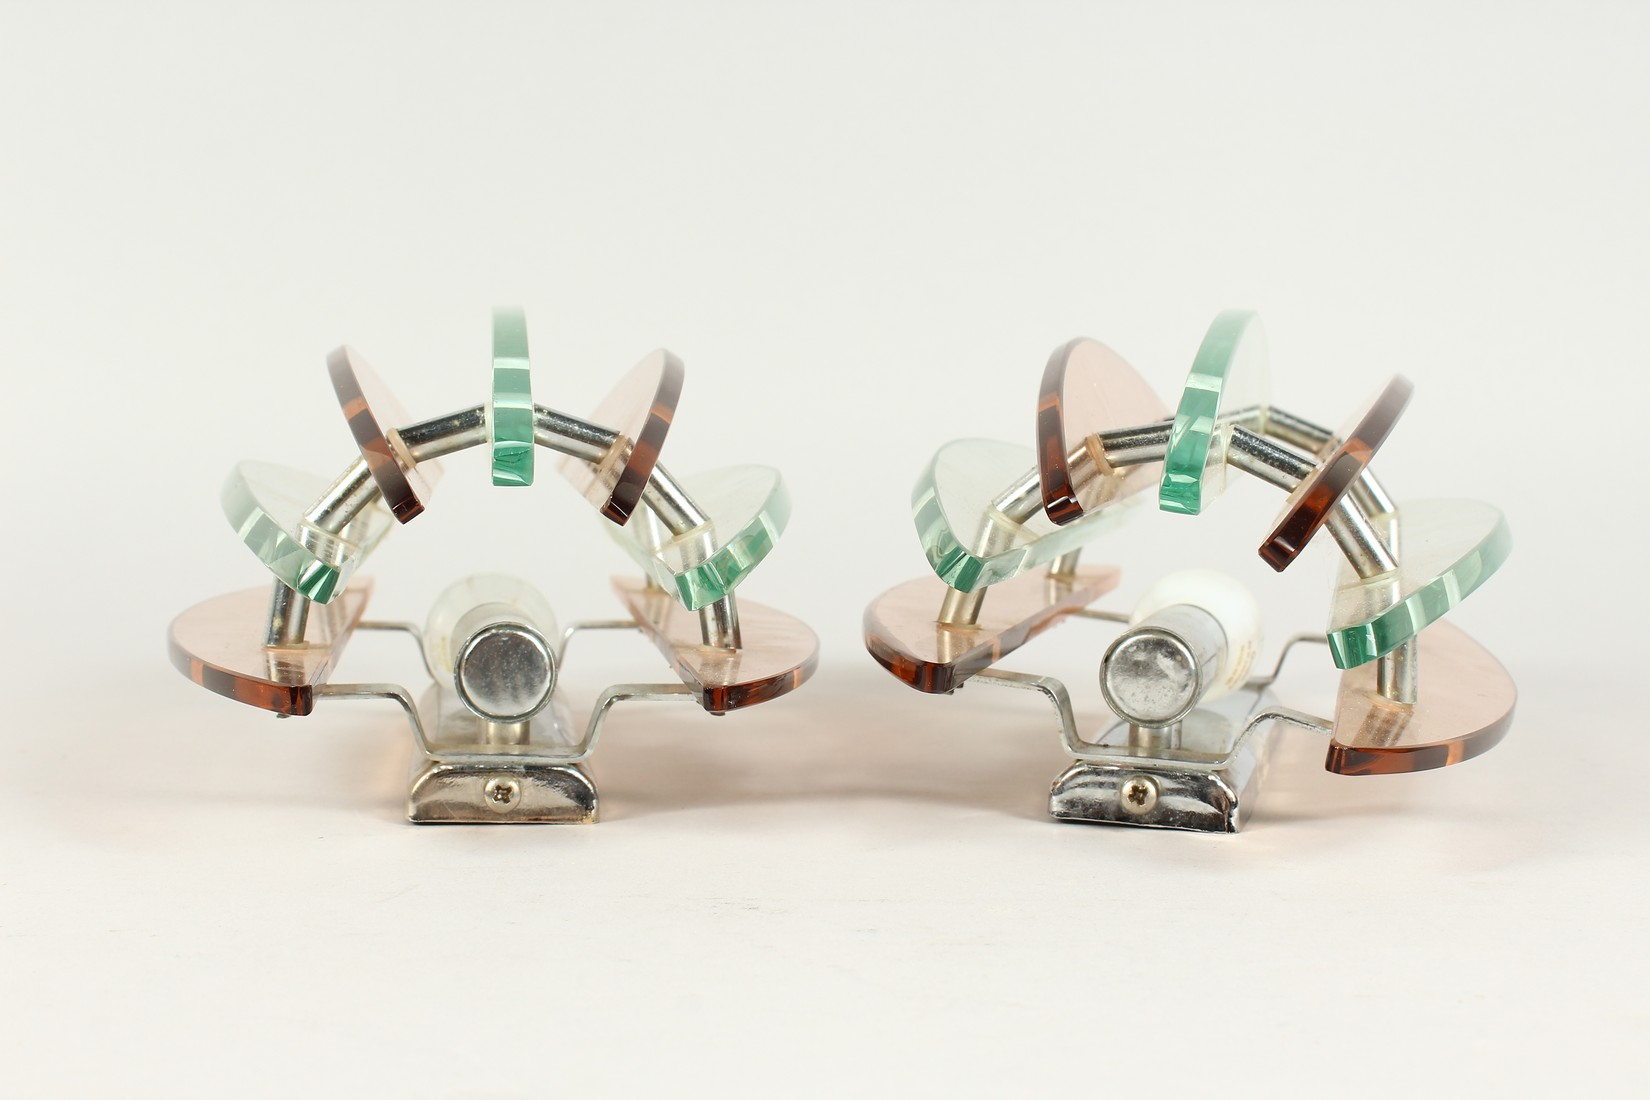 A PAIR OF ART DECO WALL LIGHTS 11.5ins long - Image 3 of 5